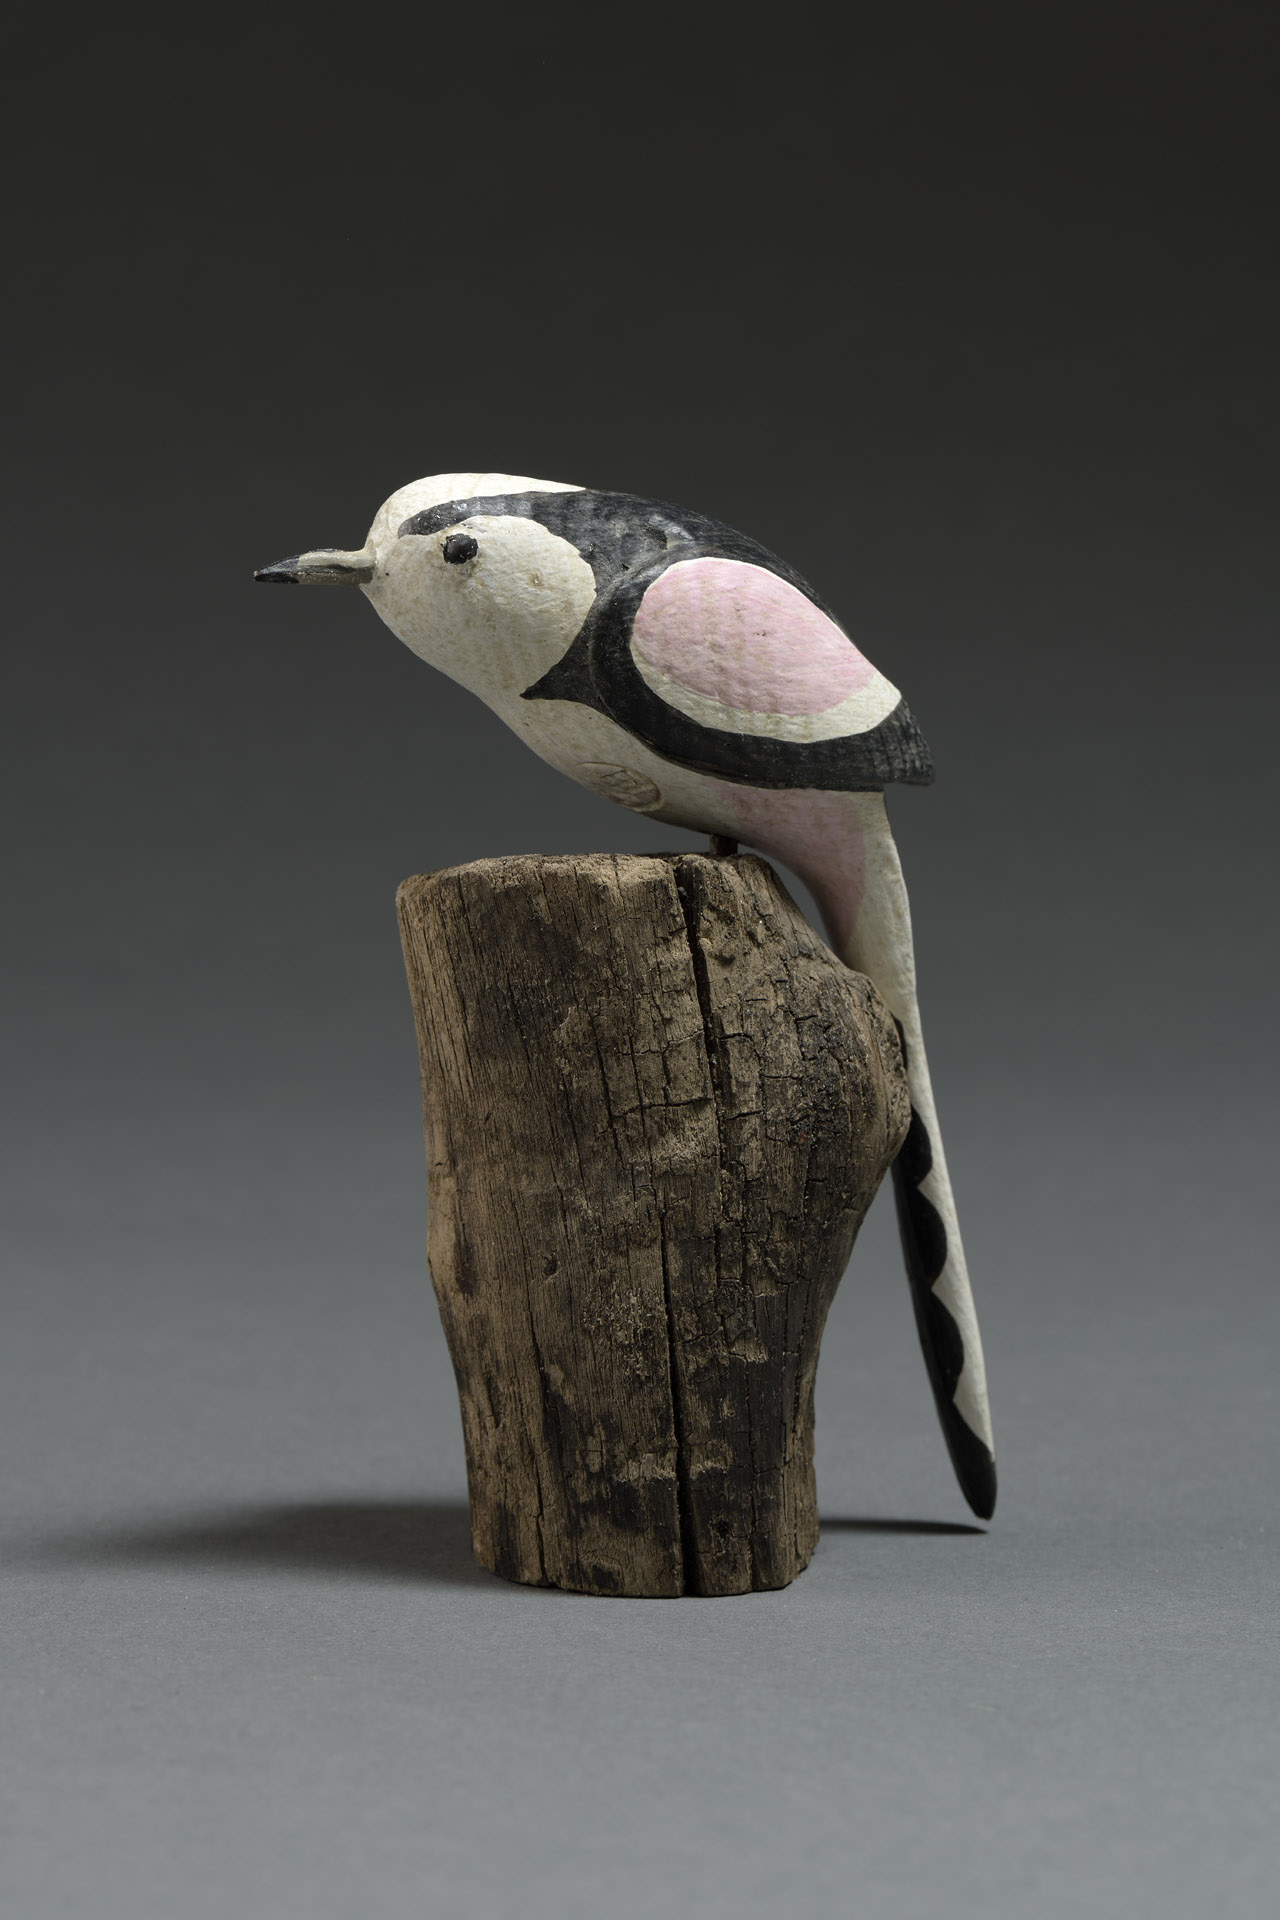 LONG TAILED TIT - CURRENTLY ON SHOW